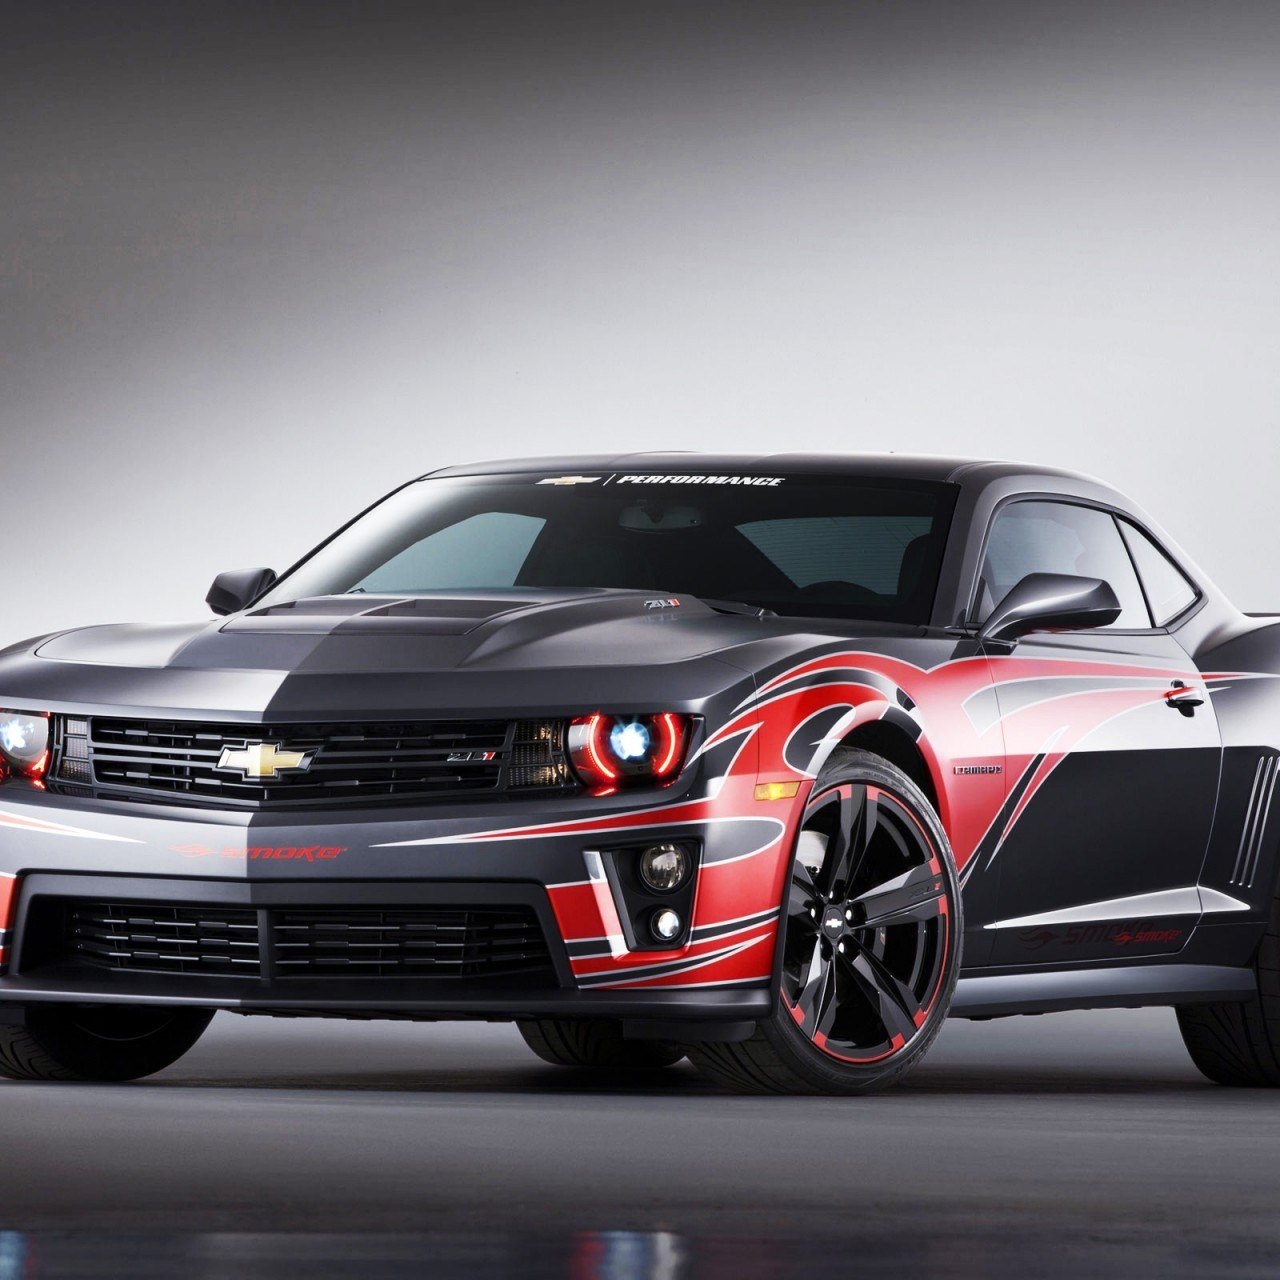 New Chevy Muscle Car Wallpaper Wallpapersafari On This Month